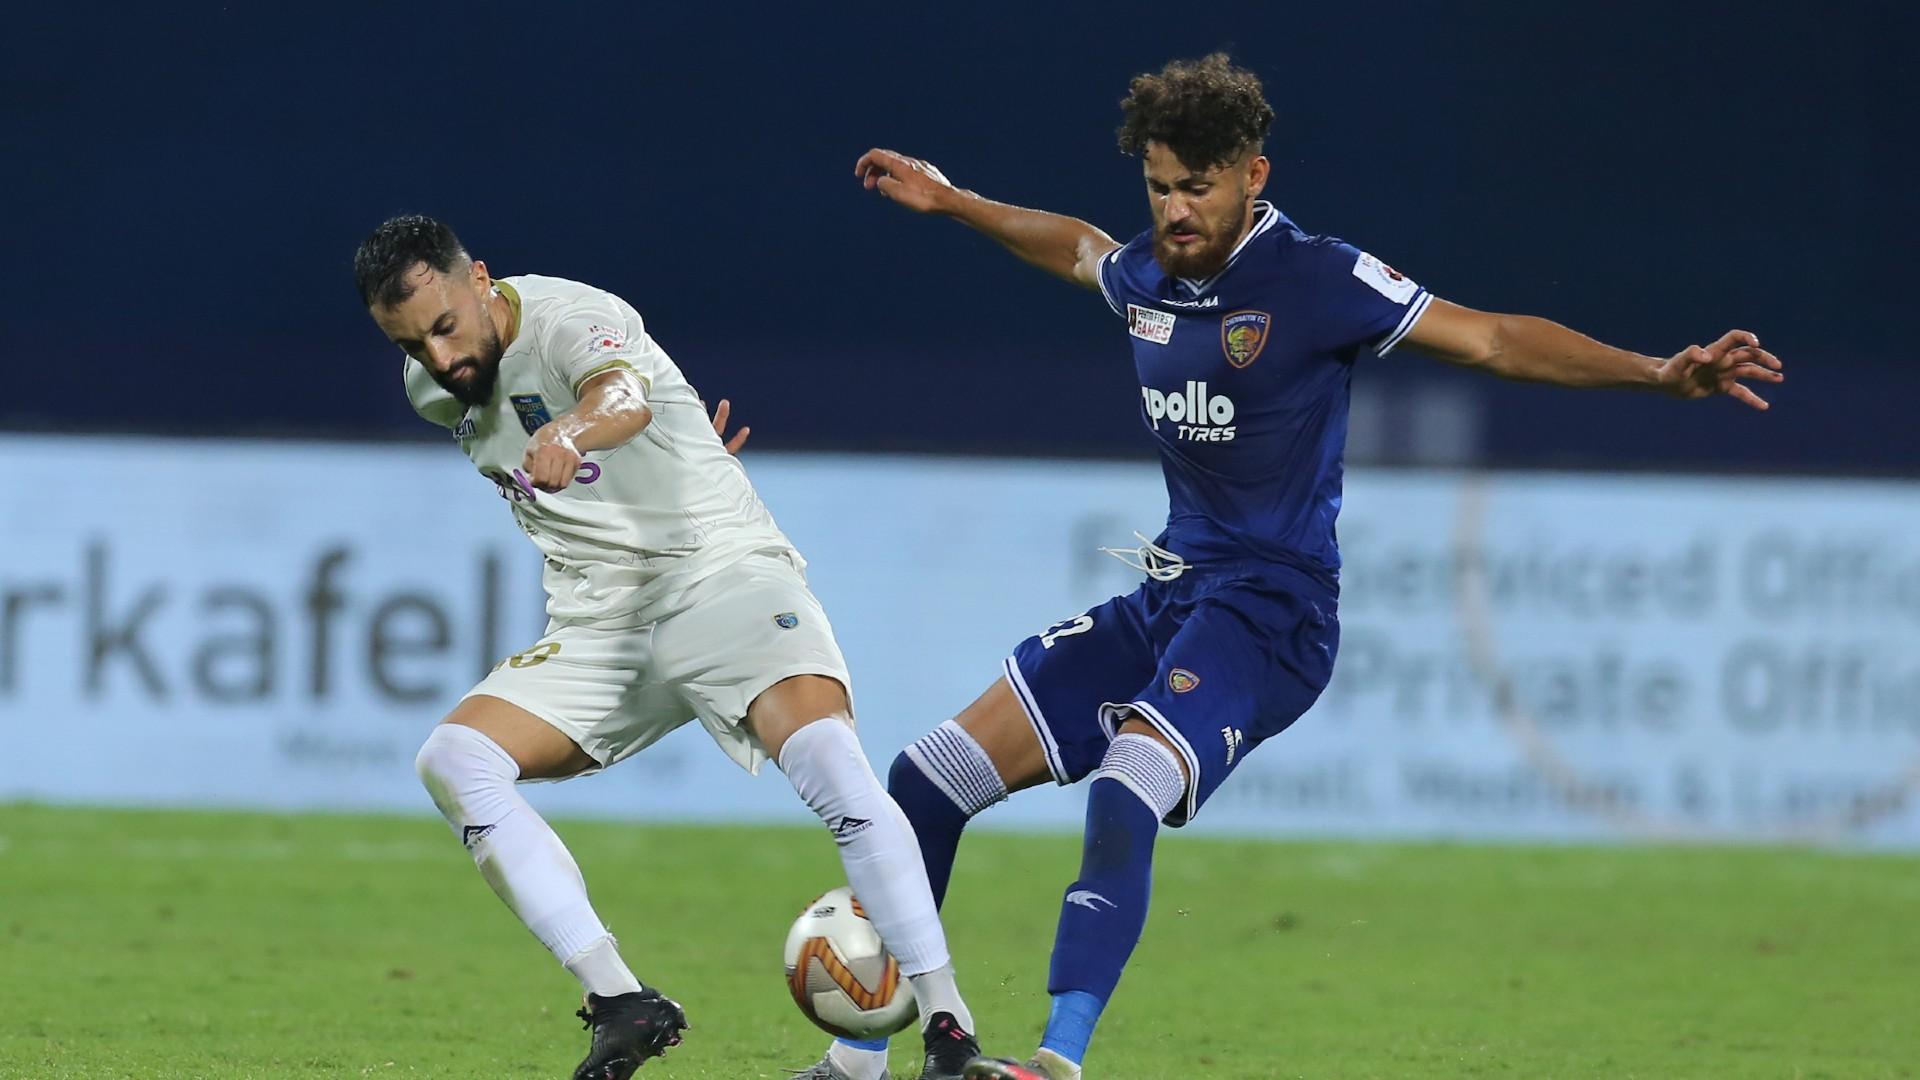 ISL: Teams playing possession-based football have a longer waiting period